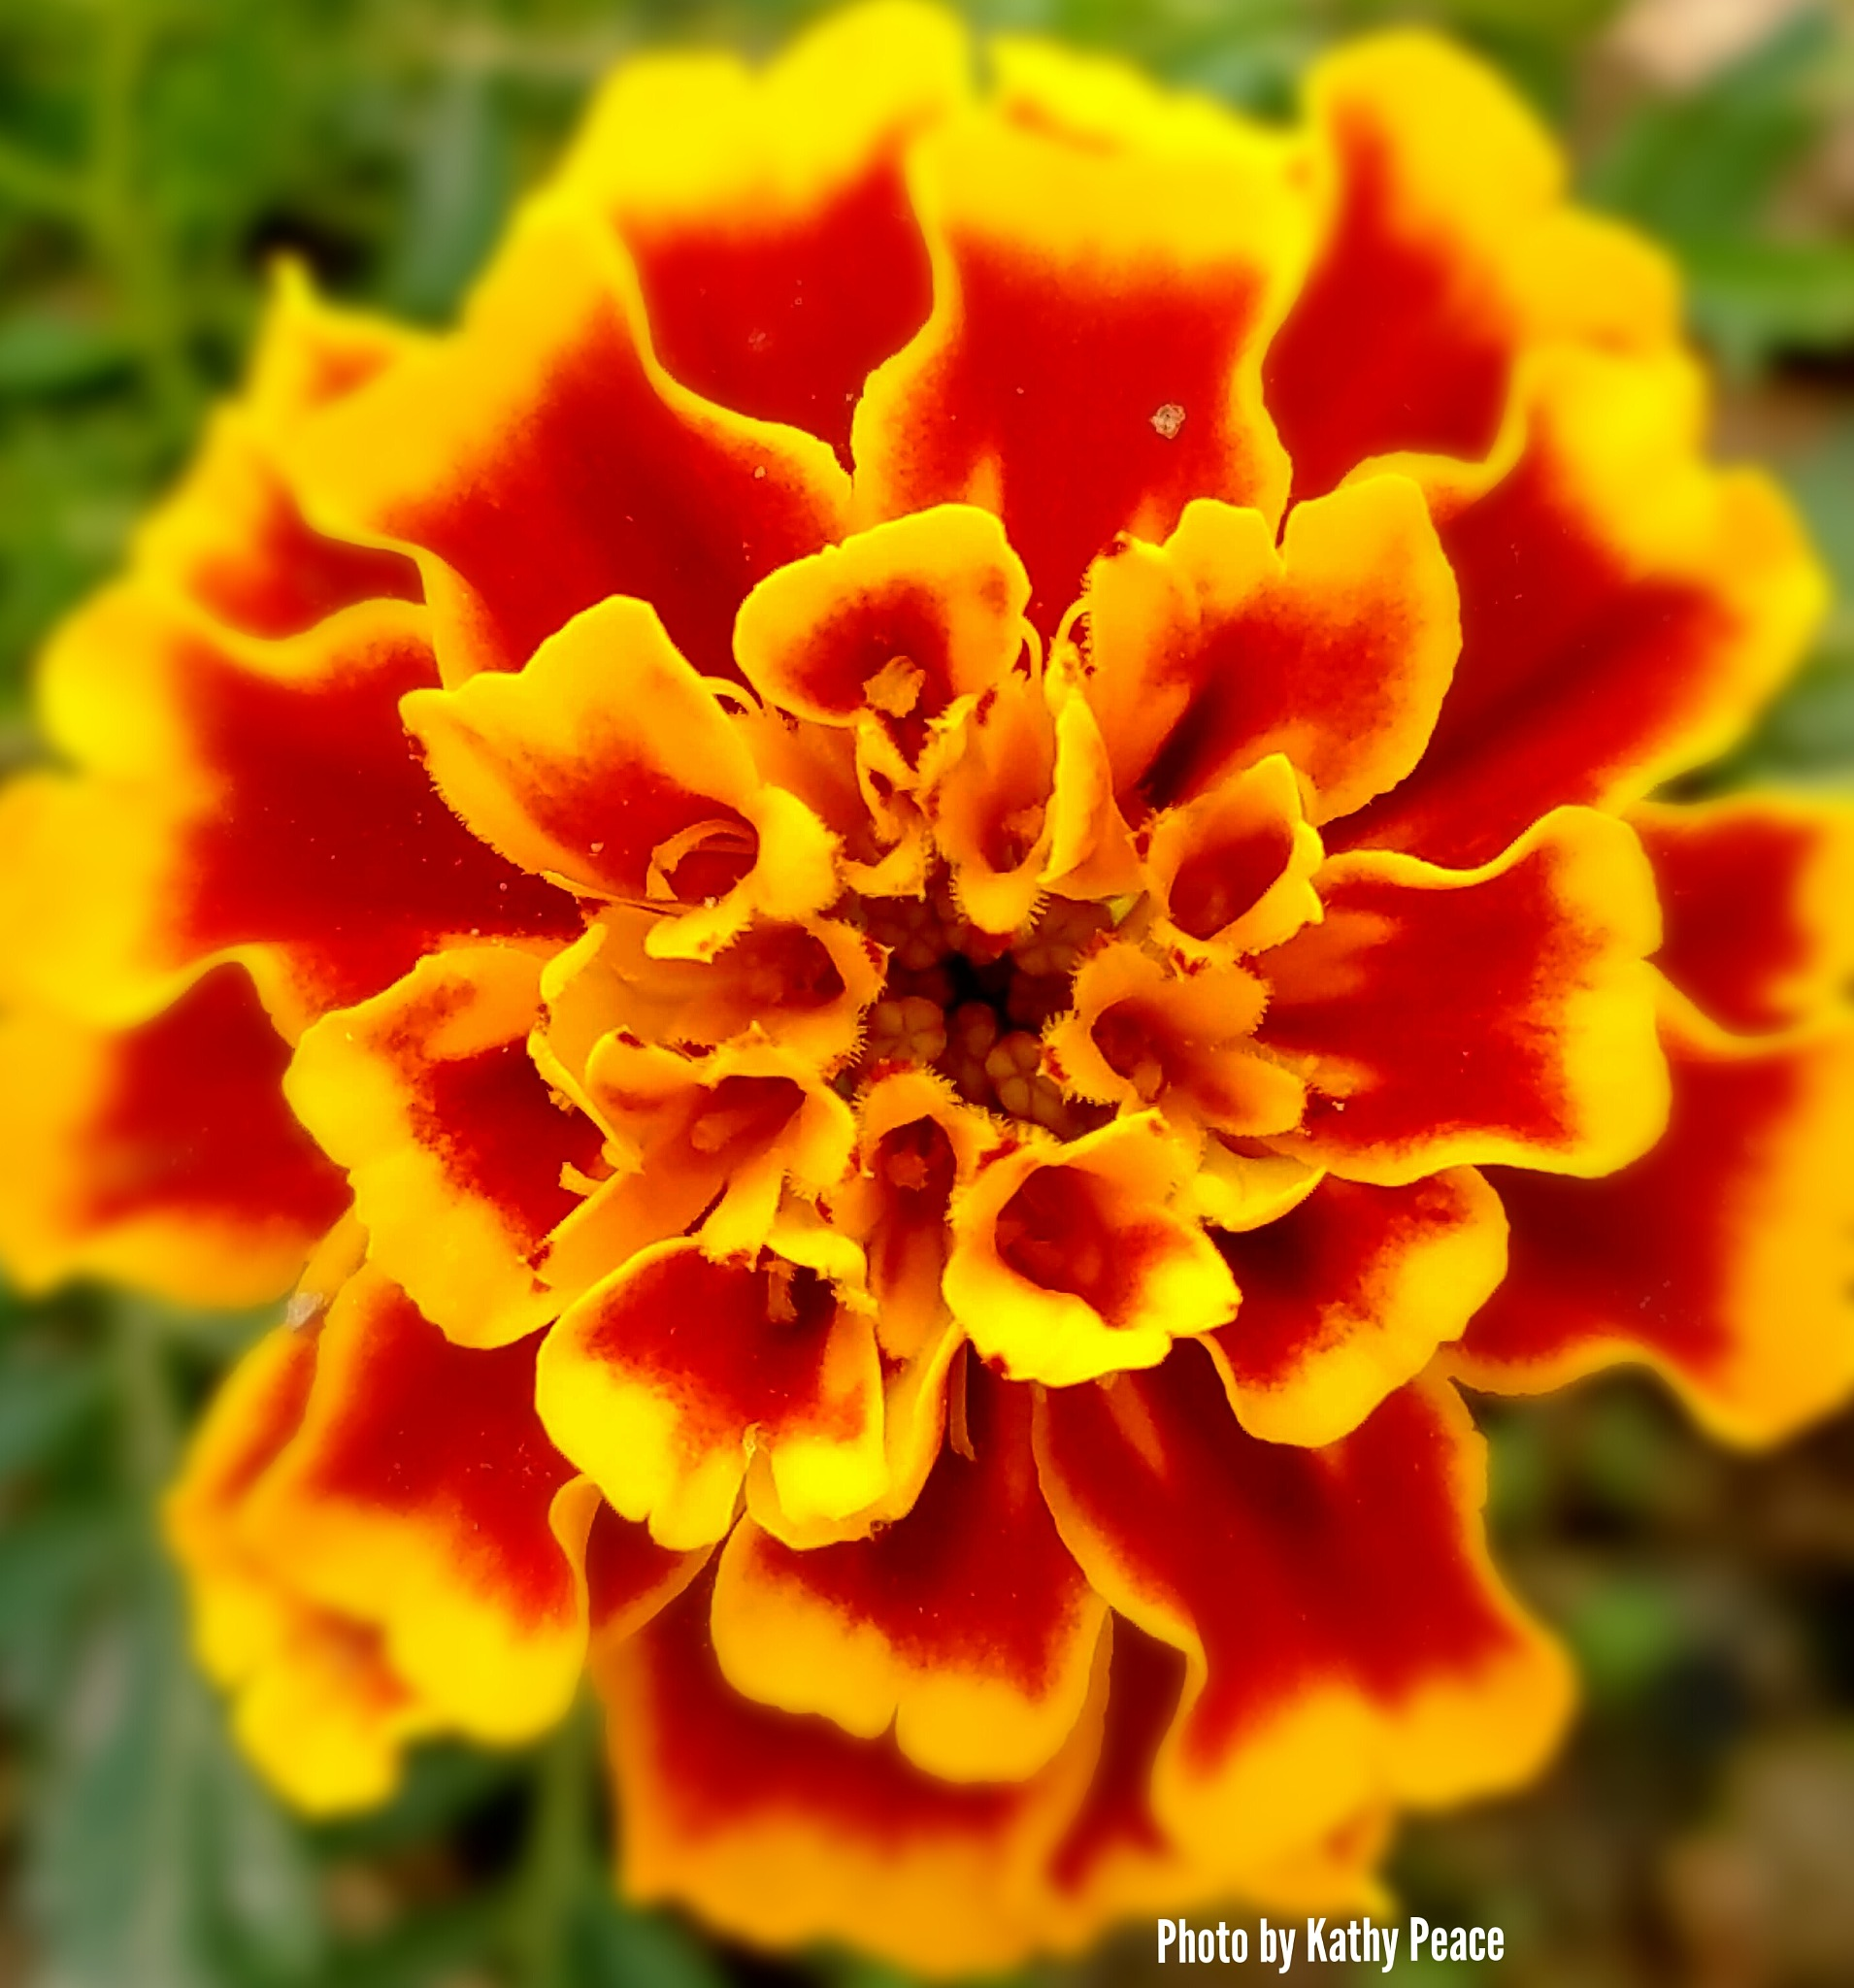 marigold on fire by kathy.peace.3